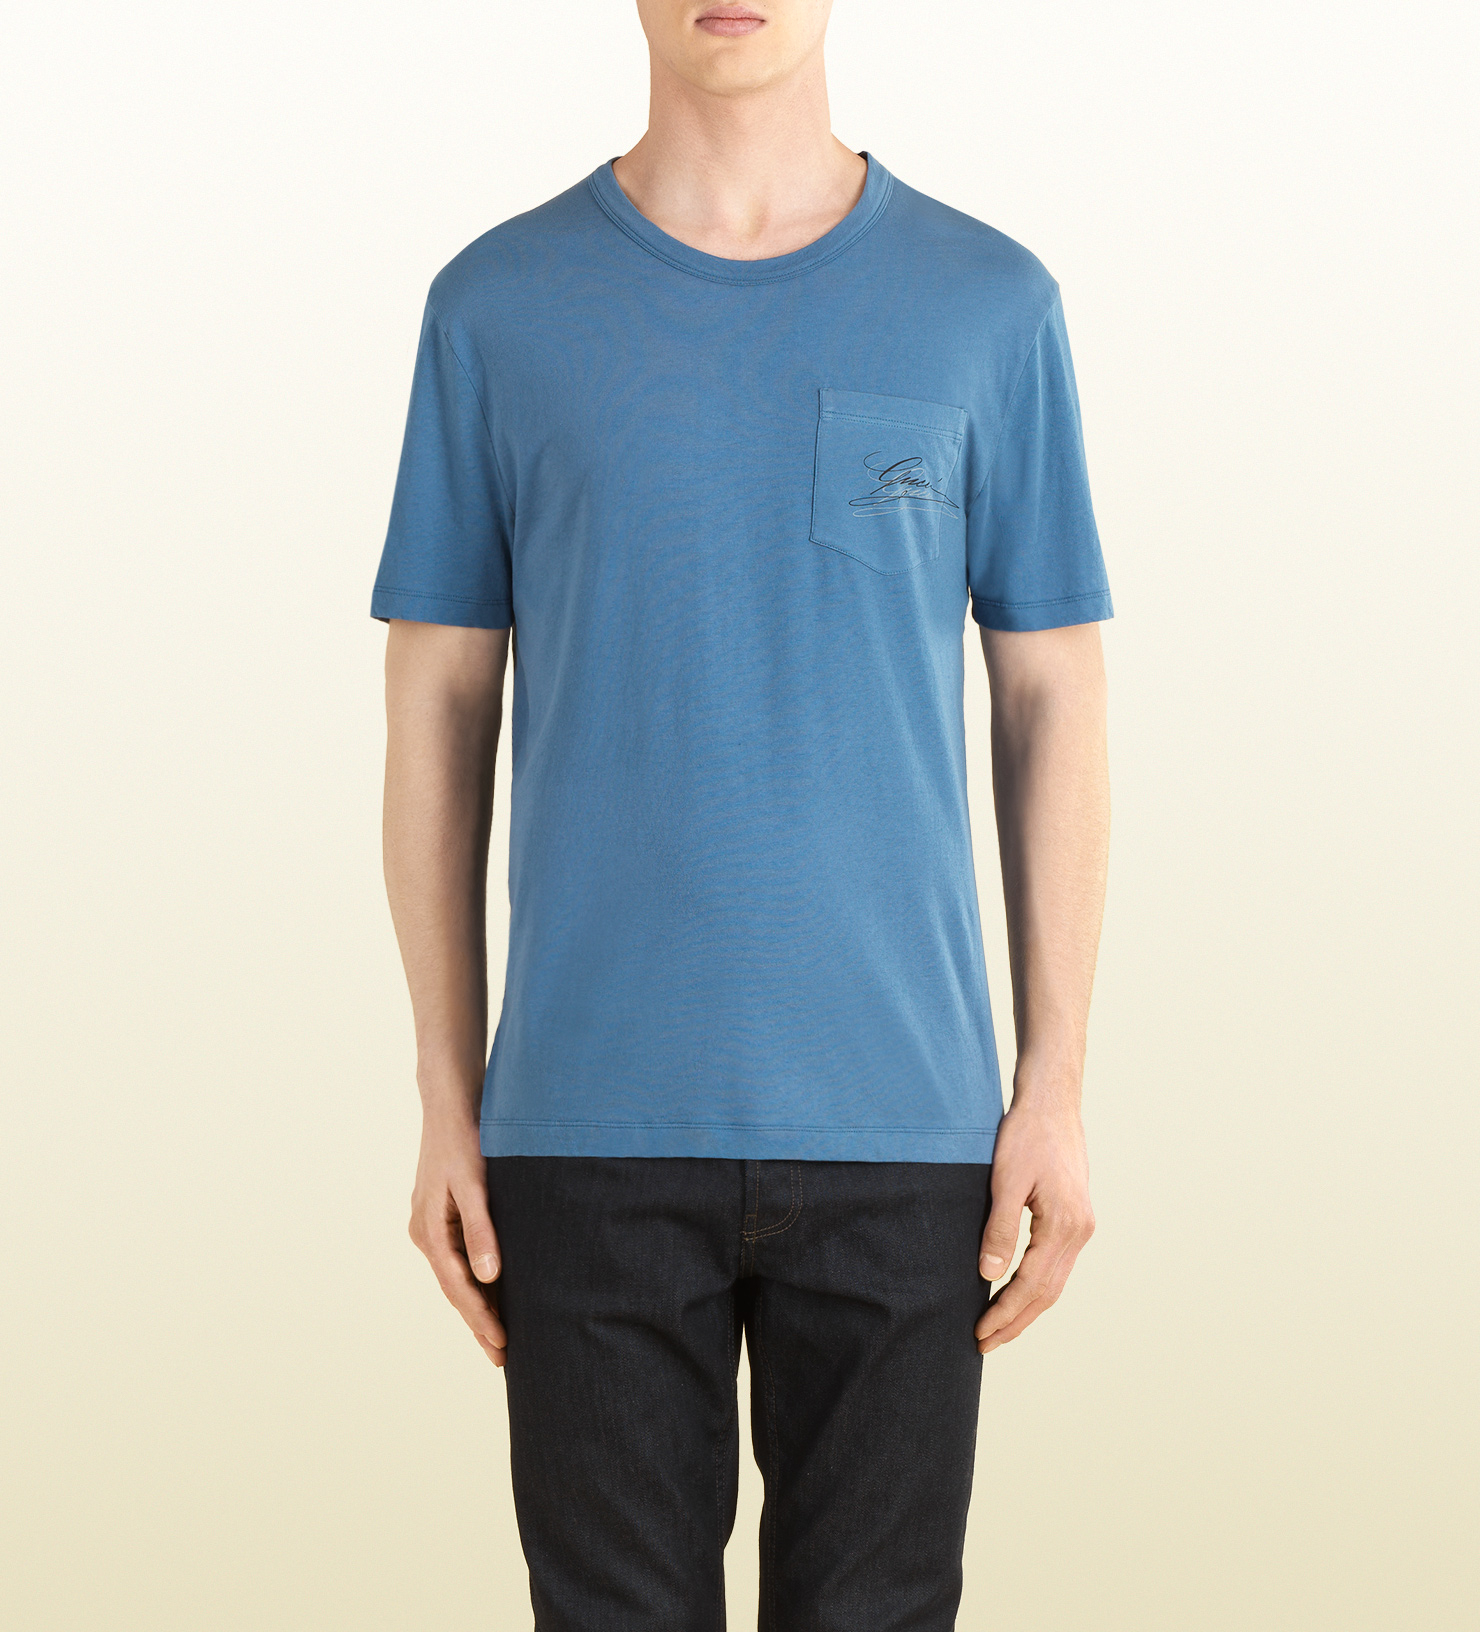 gucci blue cotton jersey pocket tshirt in blue for men lyst. Black Bedroom Furniture Sets. Home Design Ideas